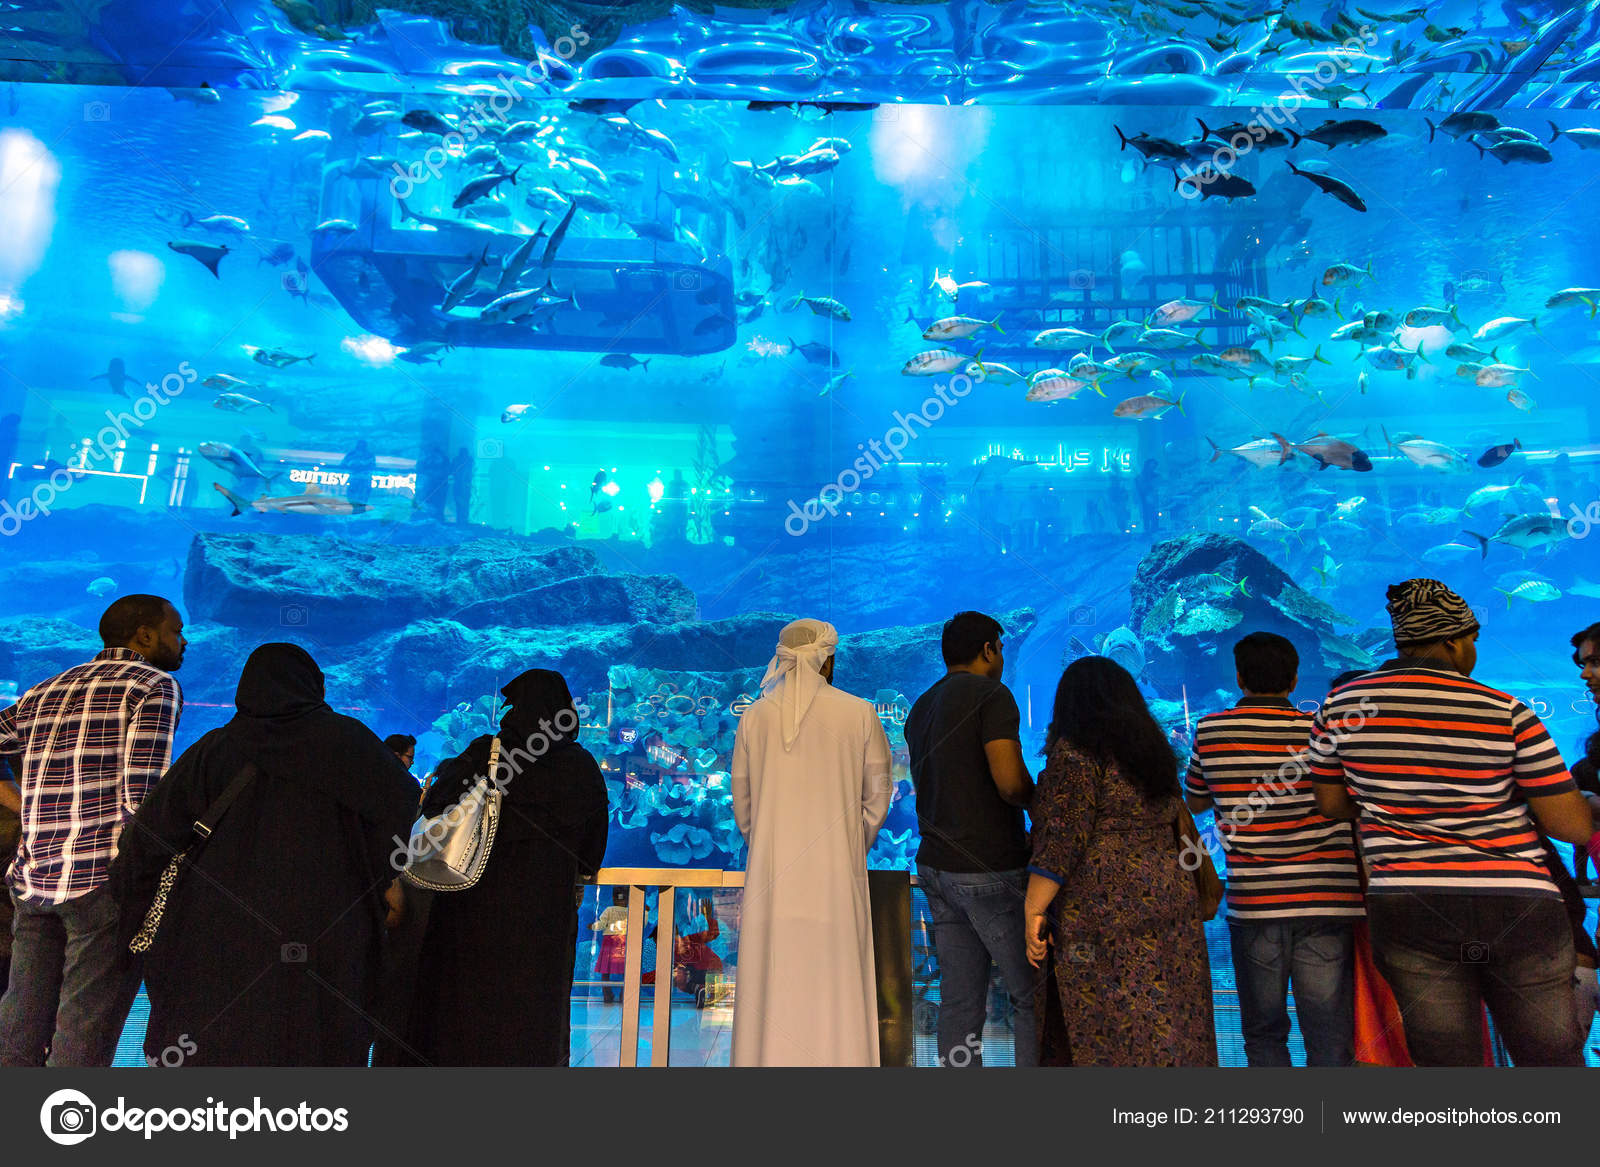 Dubai Uae June 2018 Aquarium Dubai Mall World Largest ...